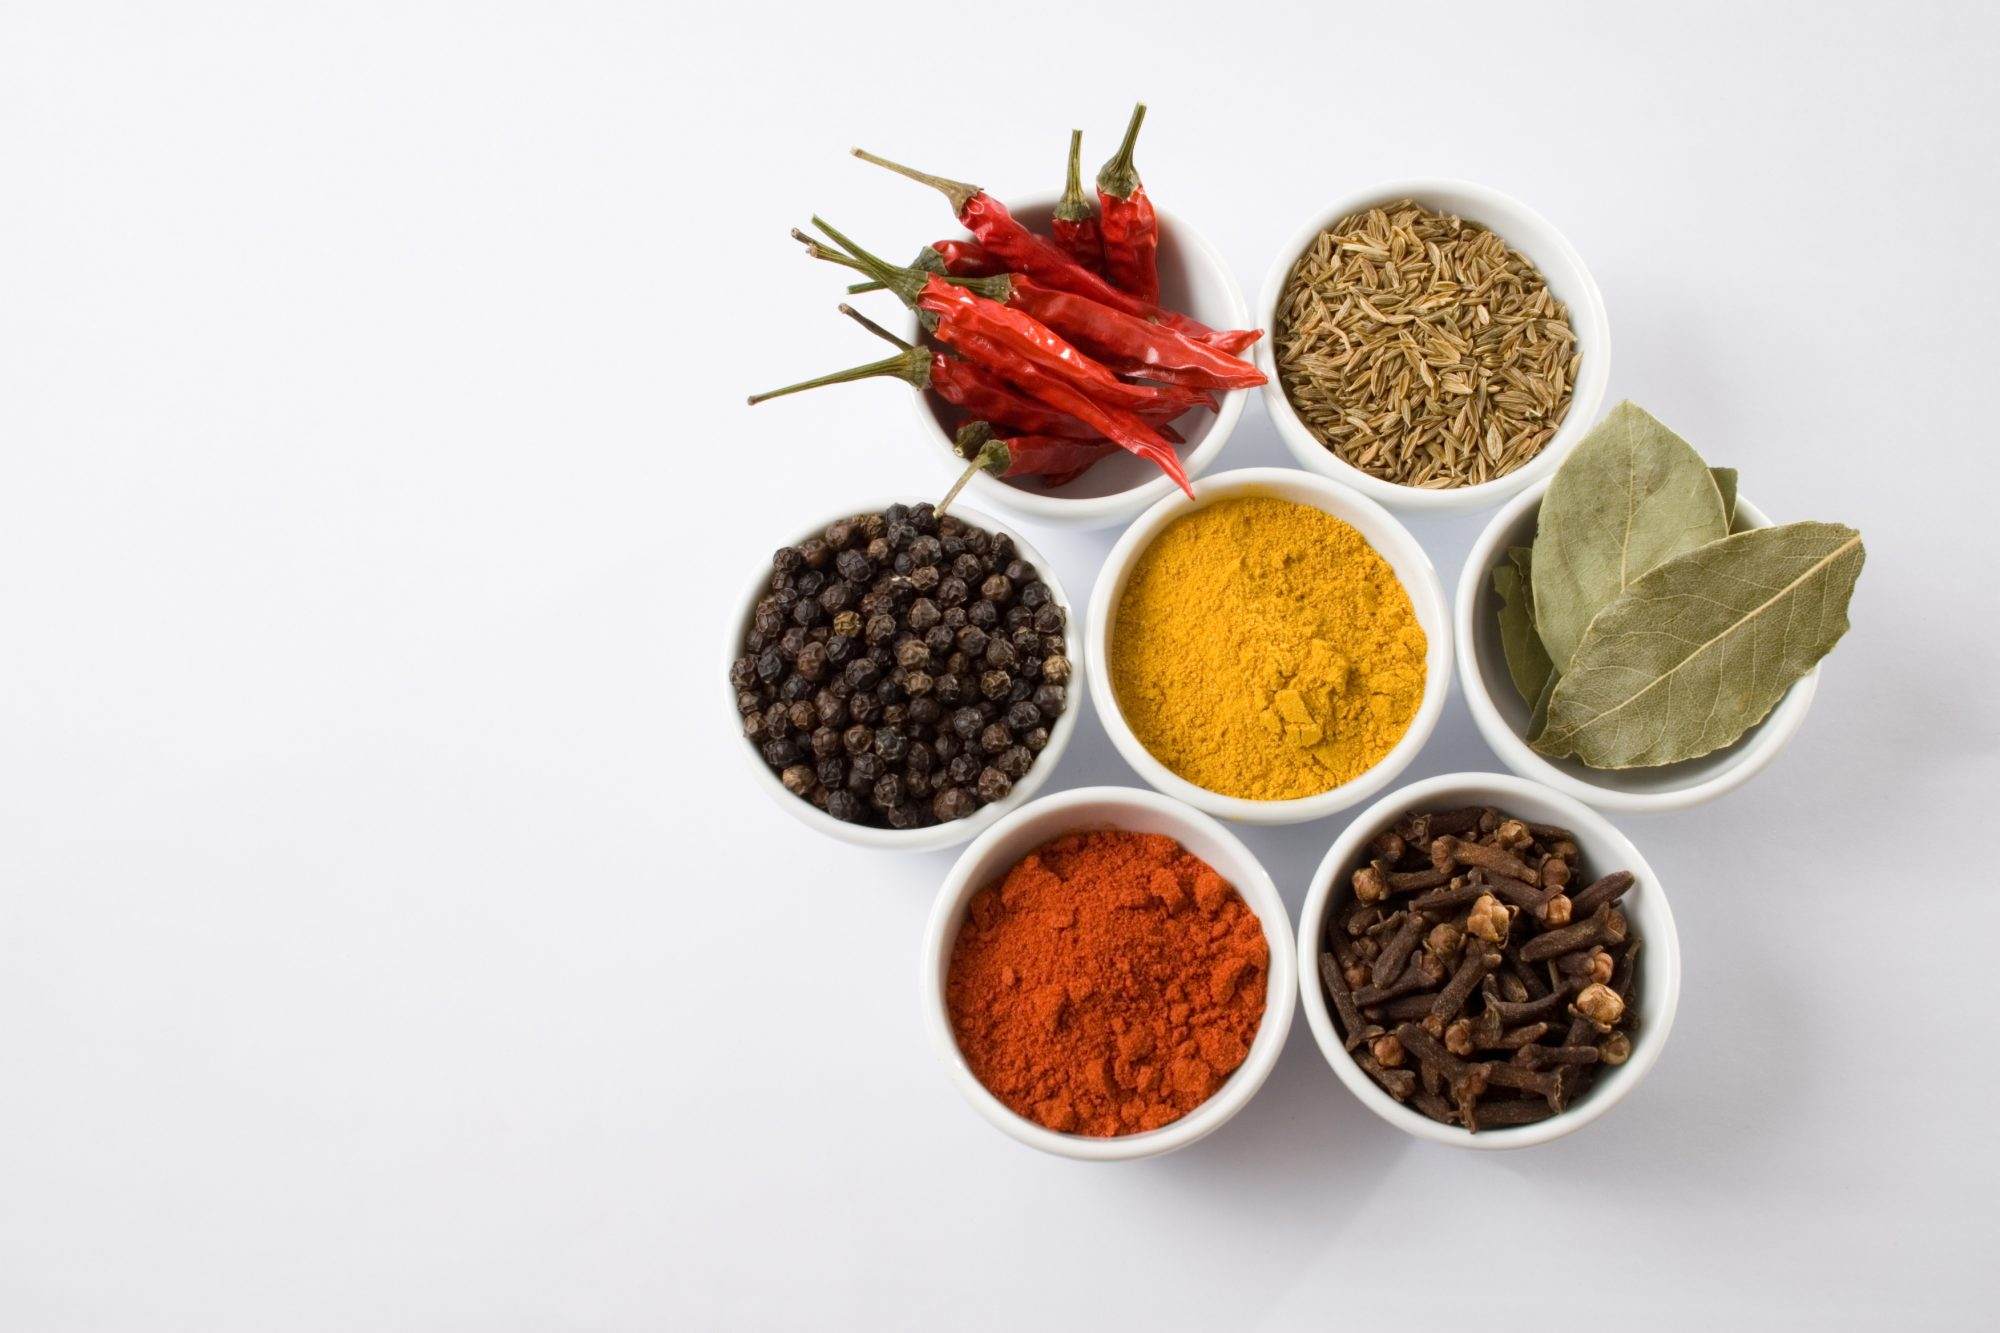 Cajun spice mix | Healthy Food Guide